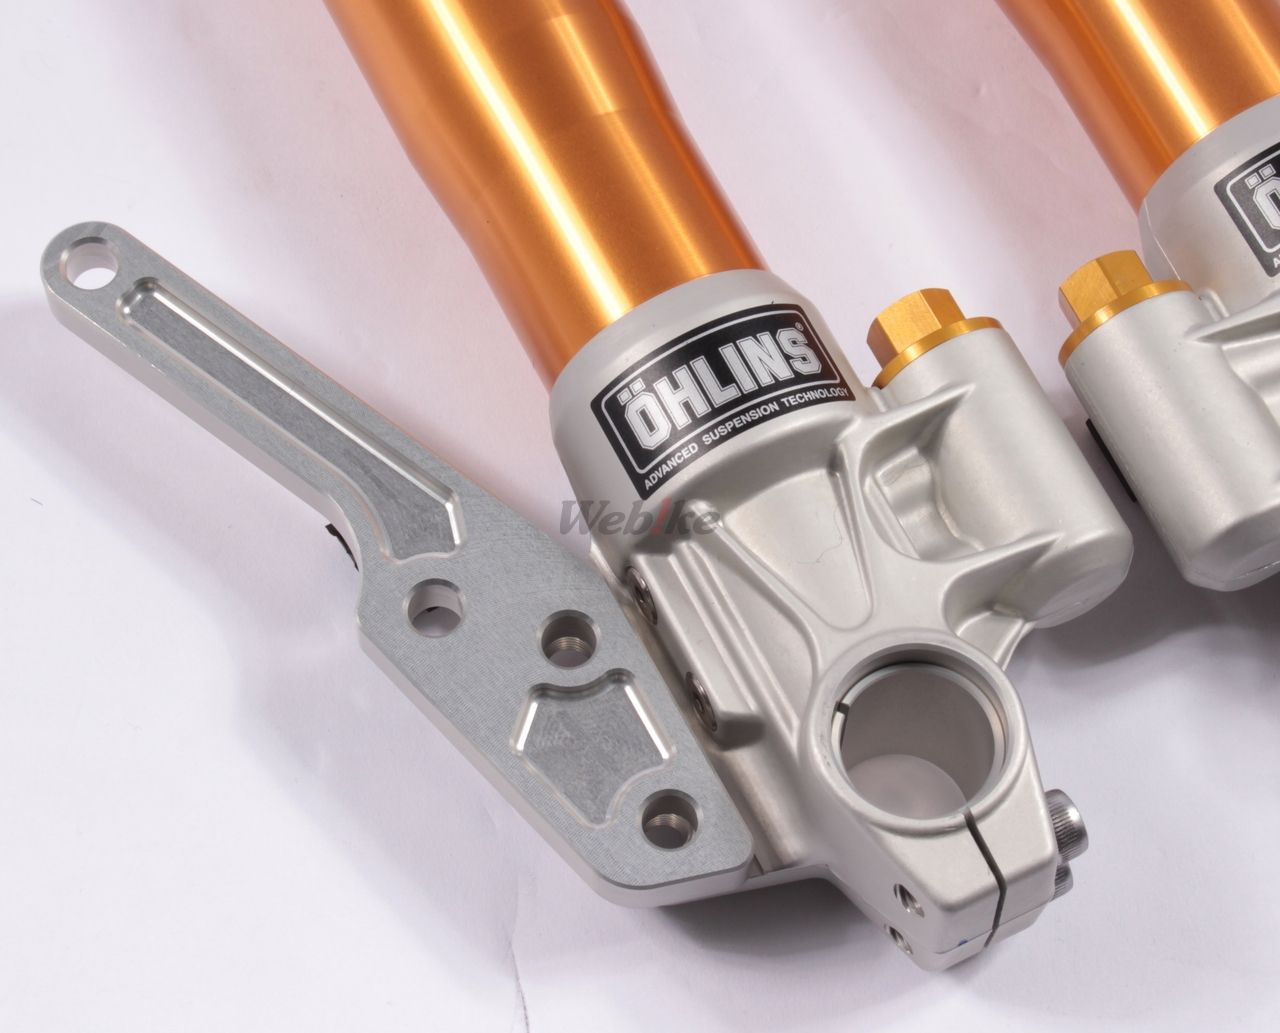 【OHLINS】正立前叉 43R&T Conventional - 「Webike-摩托百貨」